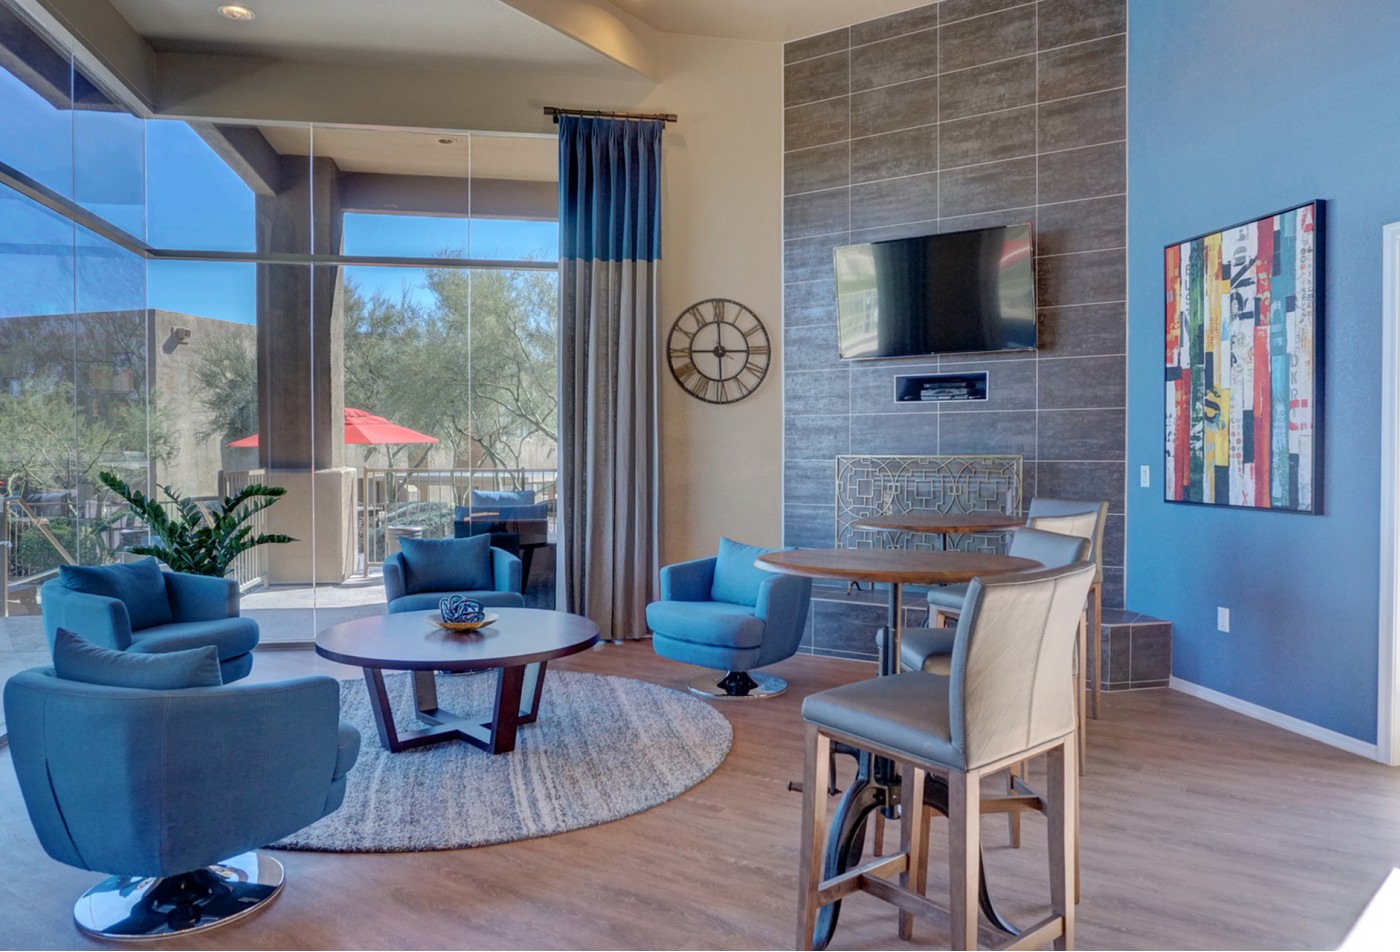 Ridge View Apartments Fountain Hills, AZ living room clubhouse